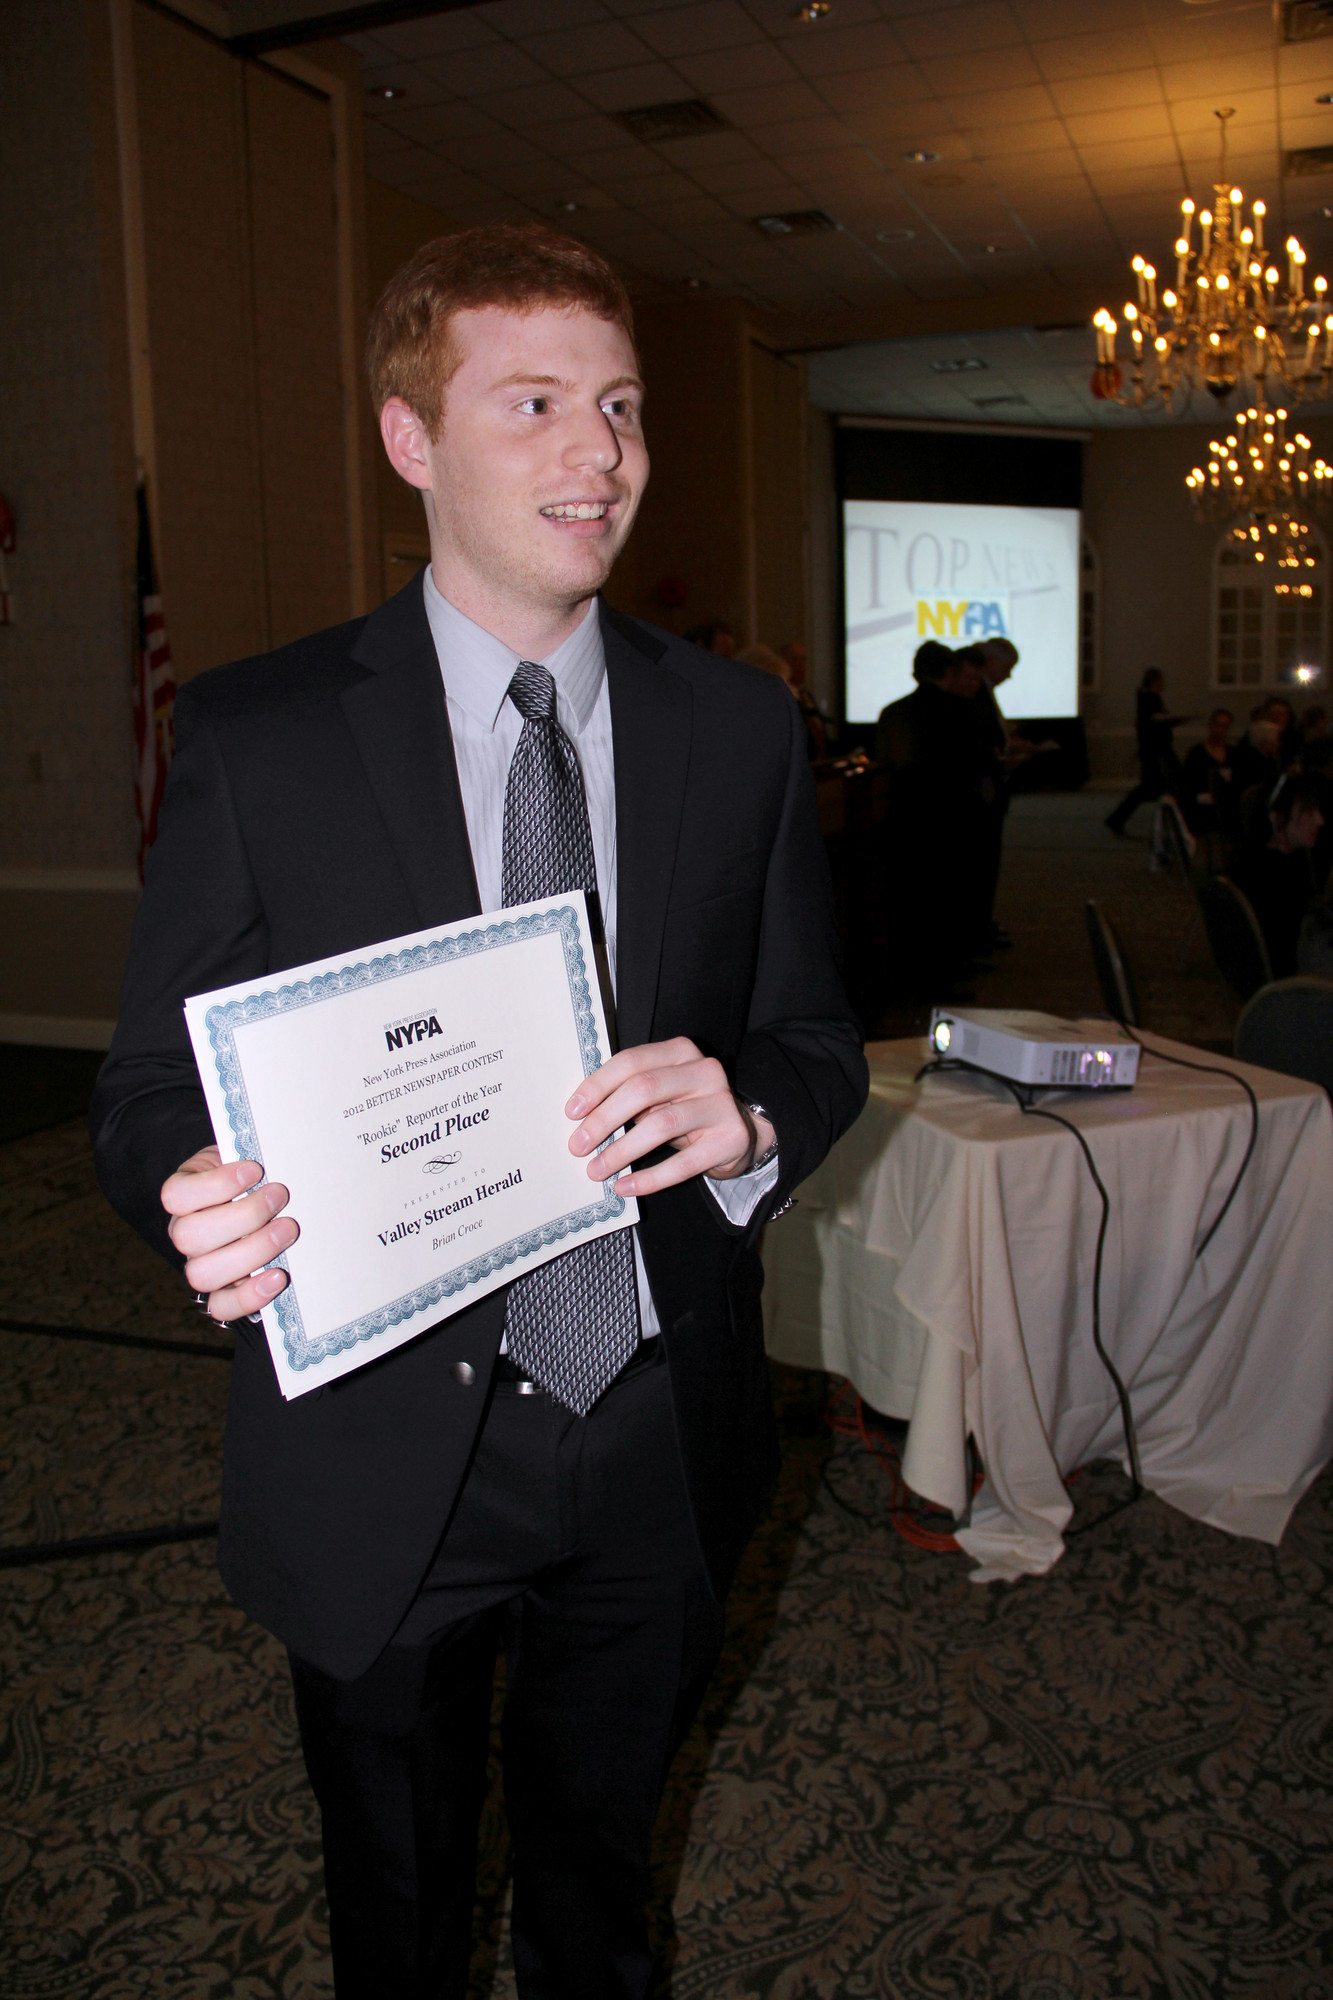 Reporter Brian Croce won second place in the Rookie Reporter of the Year category.